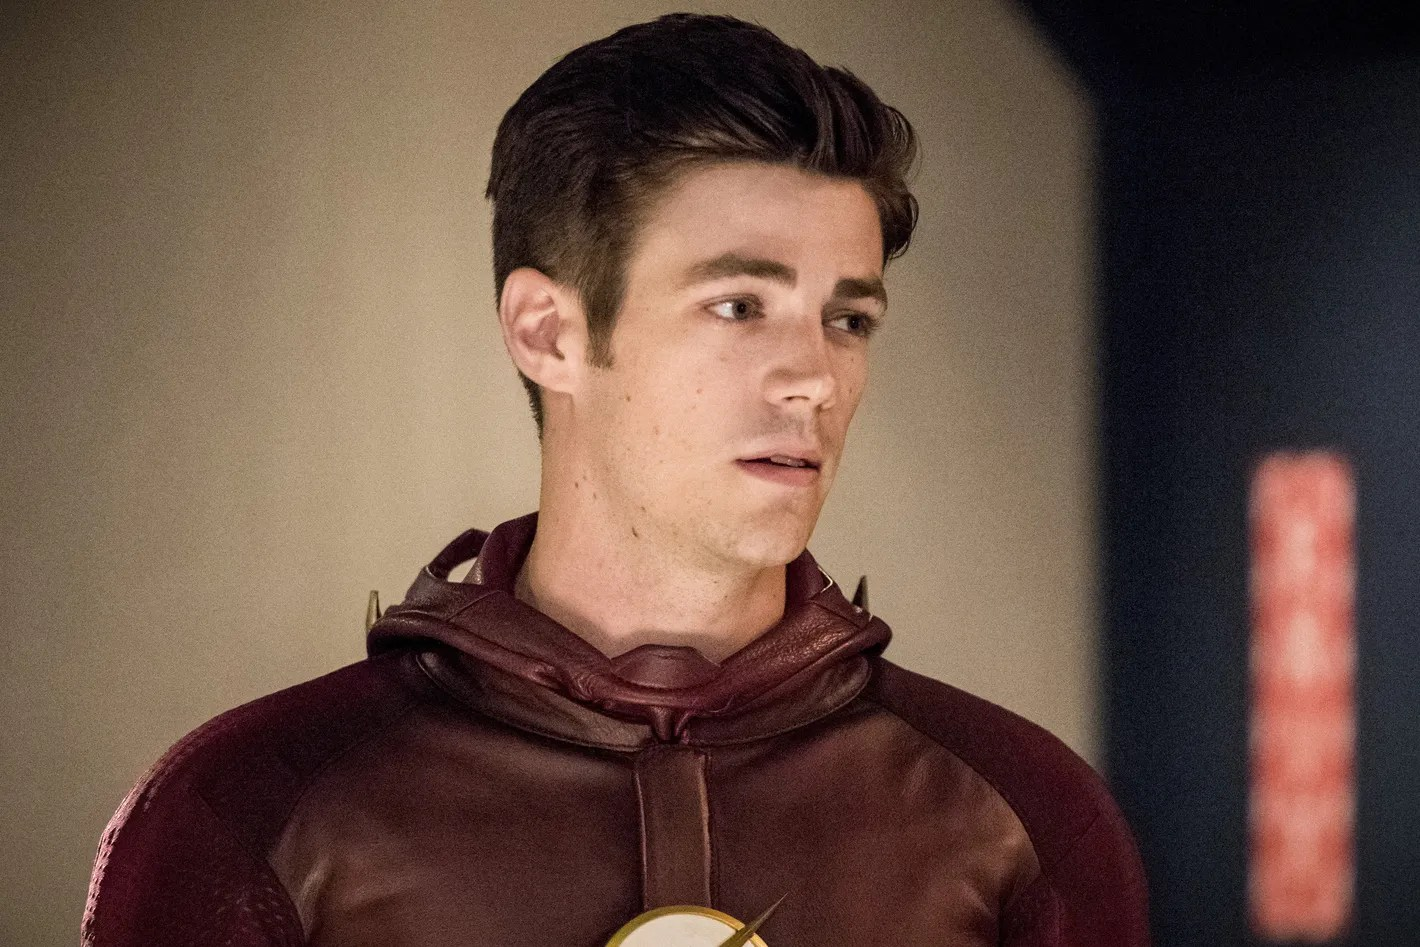 3 Flash 10 Ways To Make The Flash Great Again In Season 3